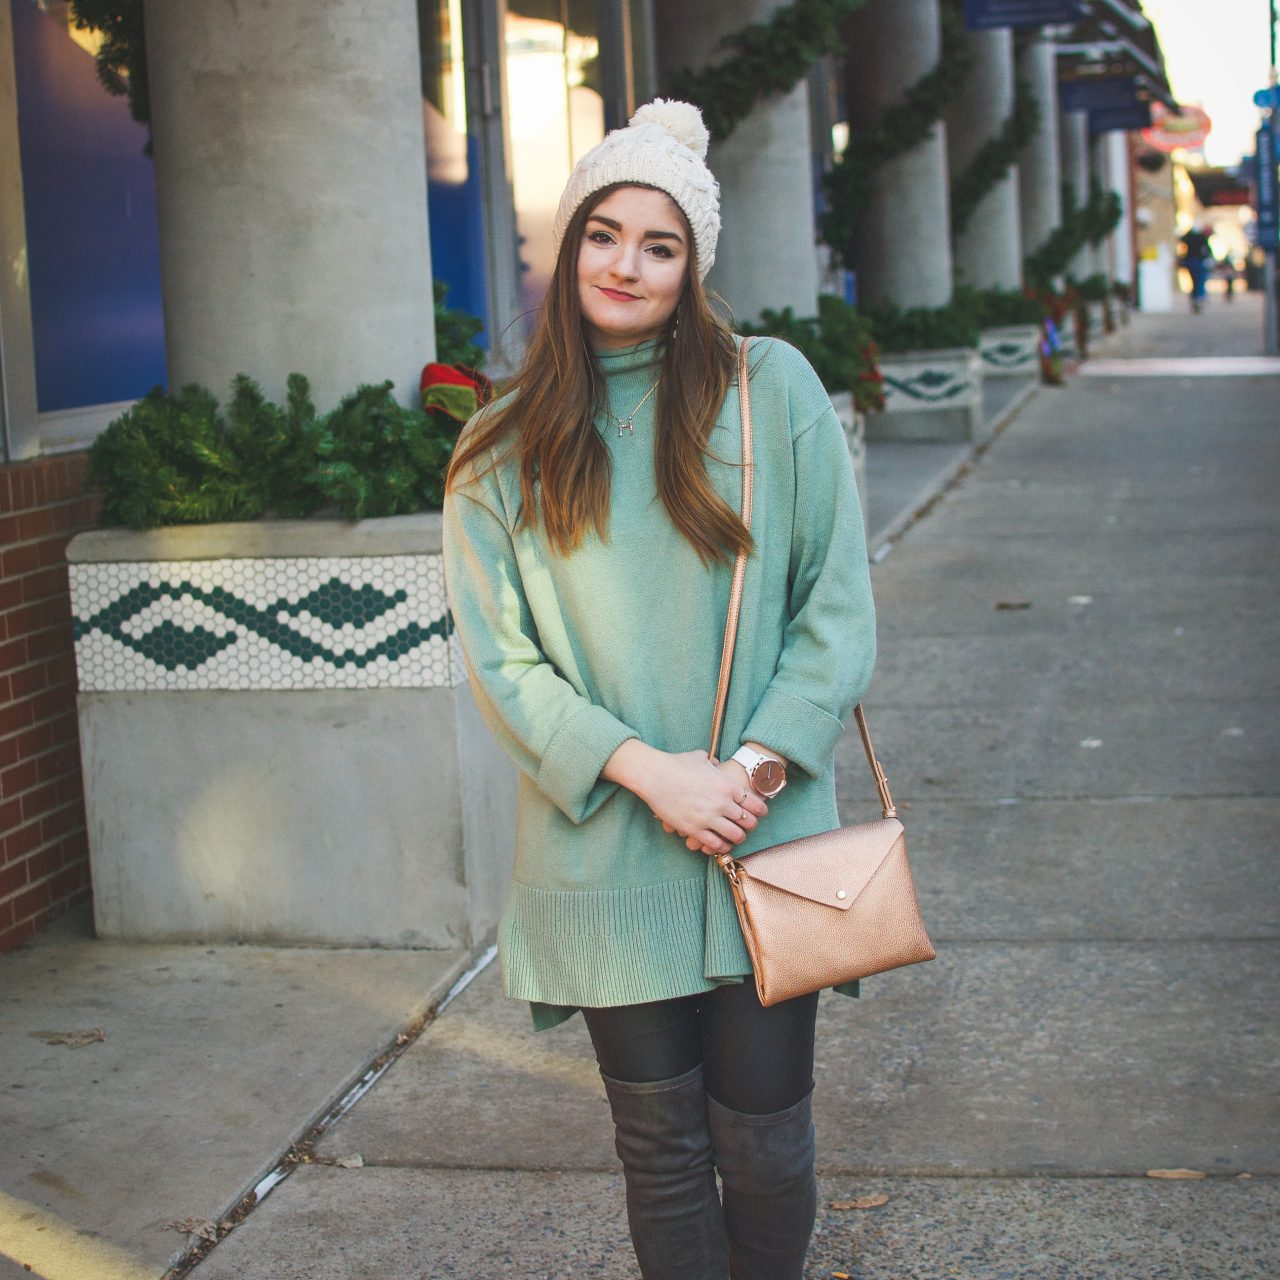 Anthropologie Sweater and Crossbody